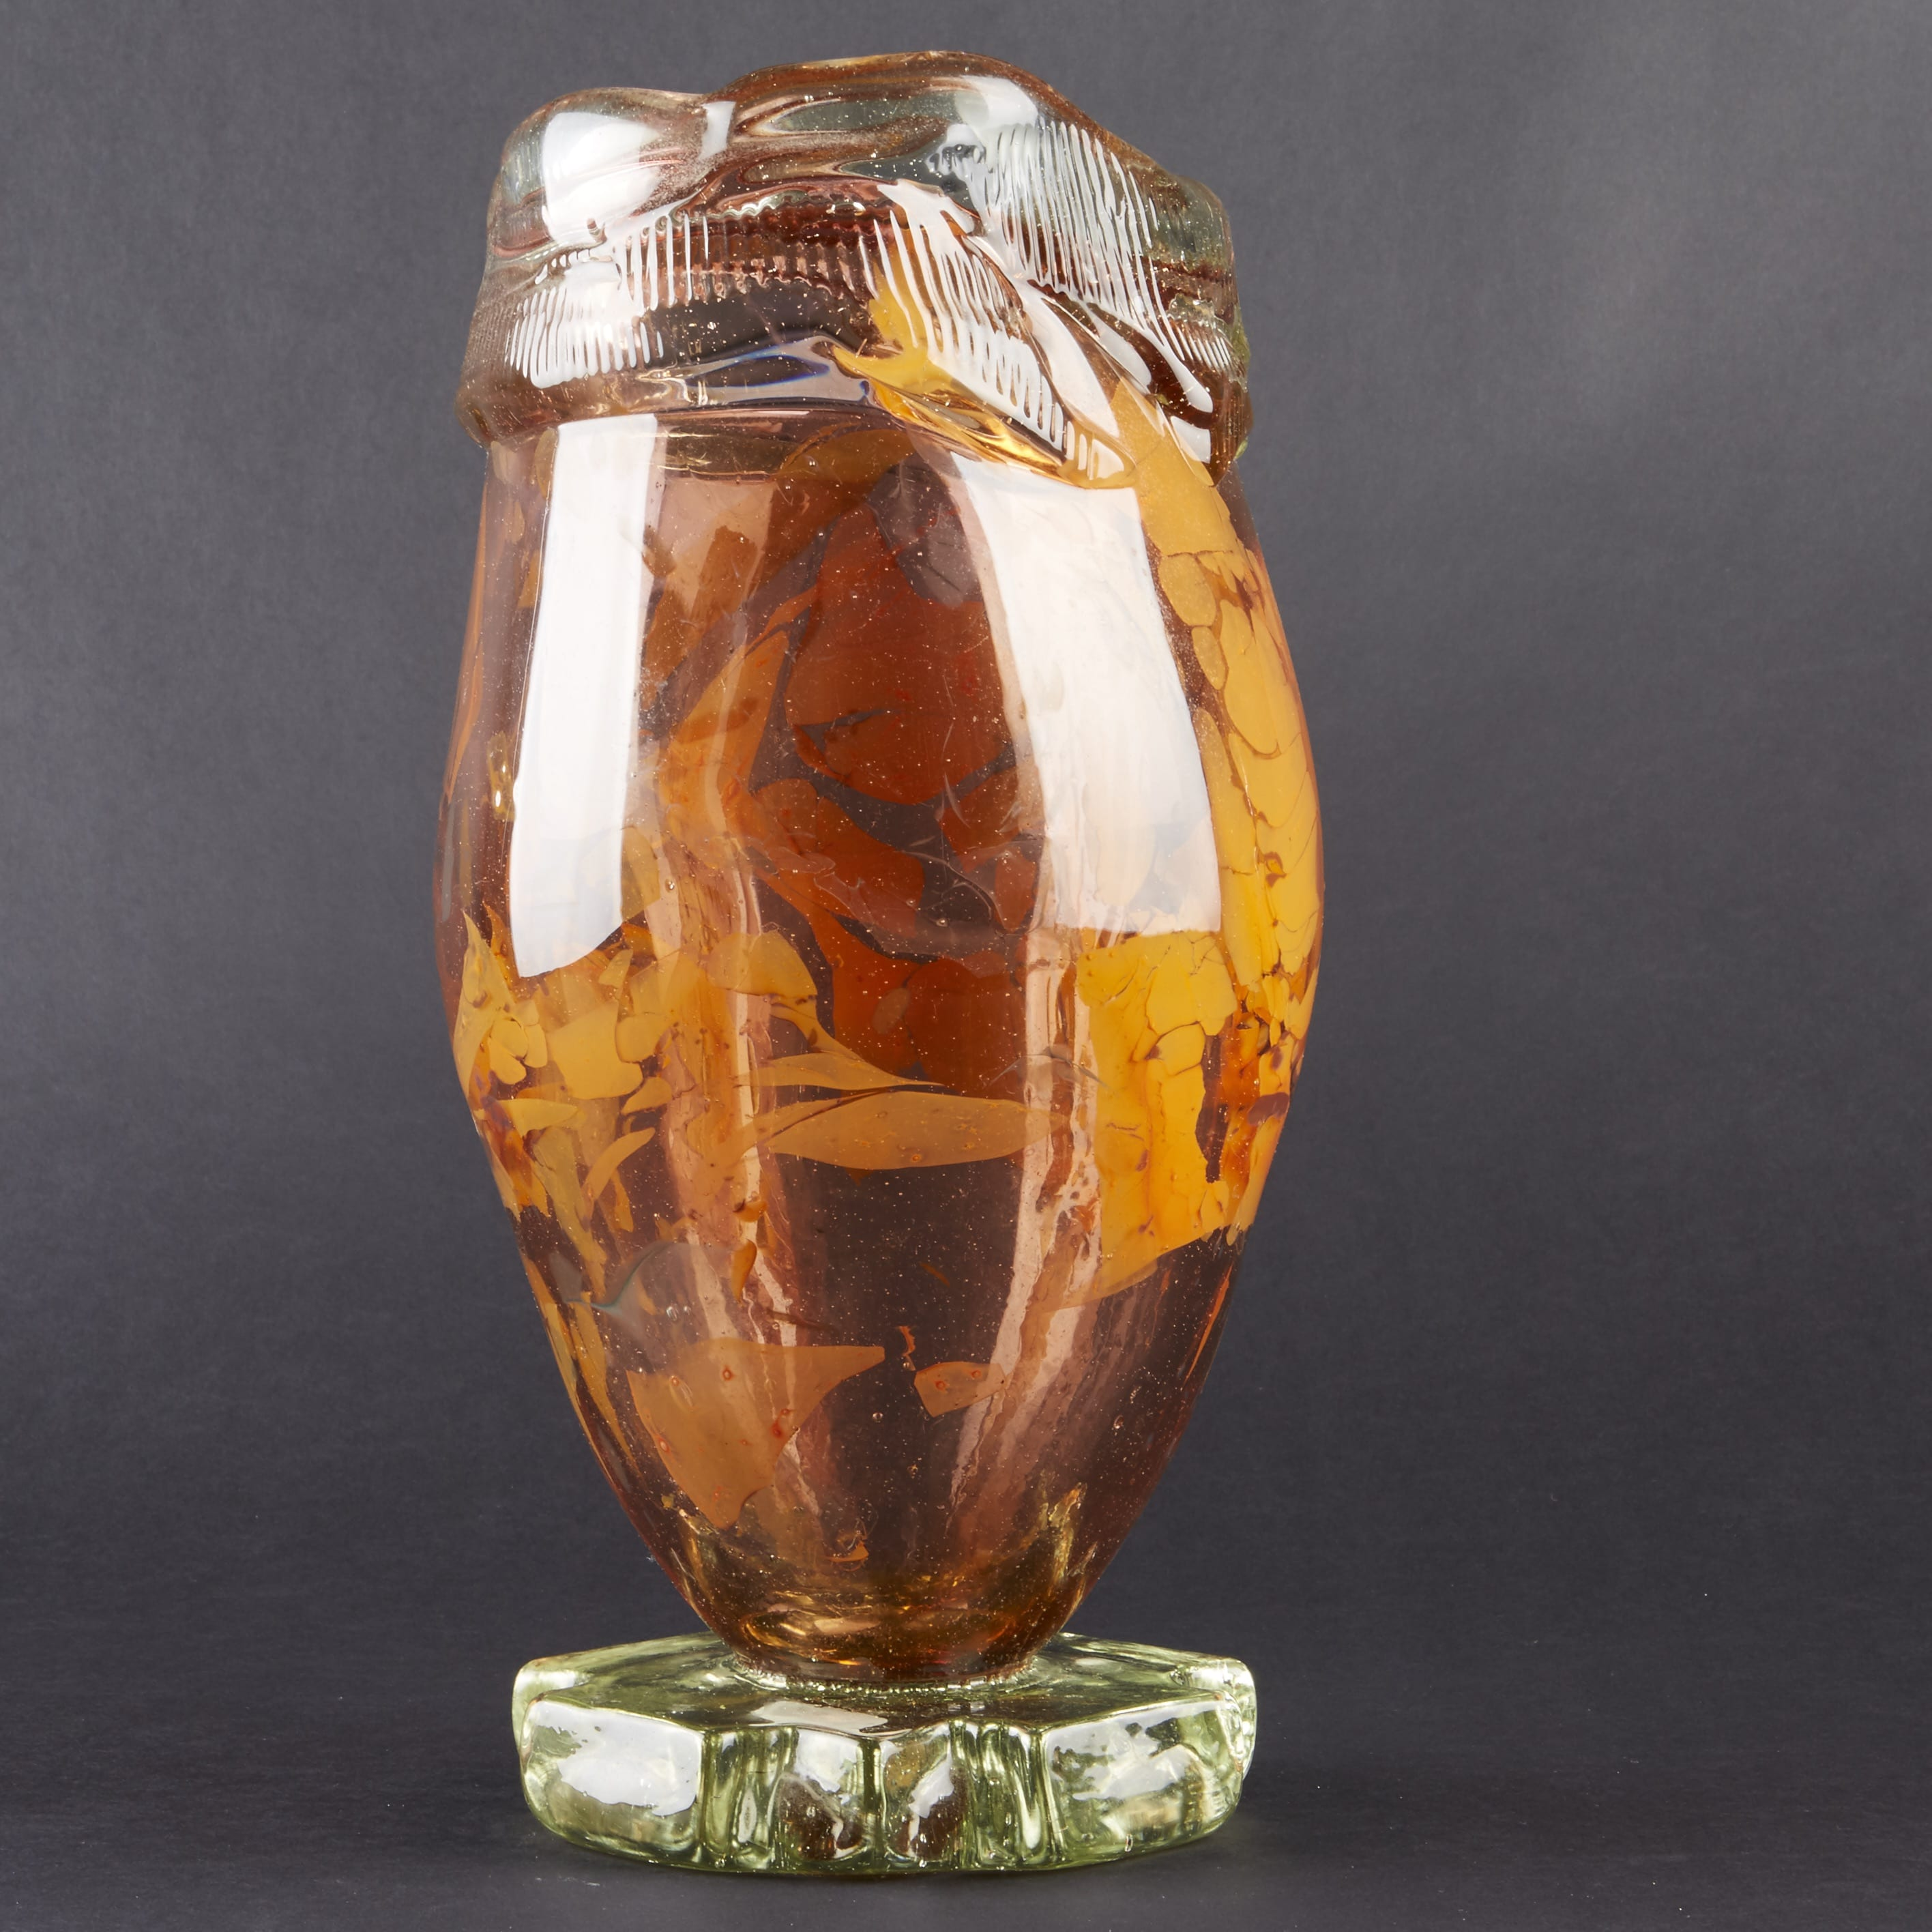 Lot 054: Fritz Dreisbach Glass Vase